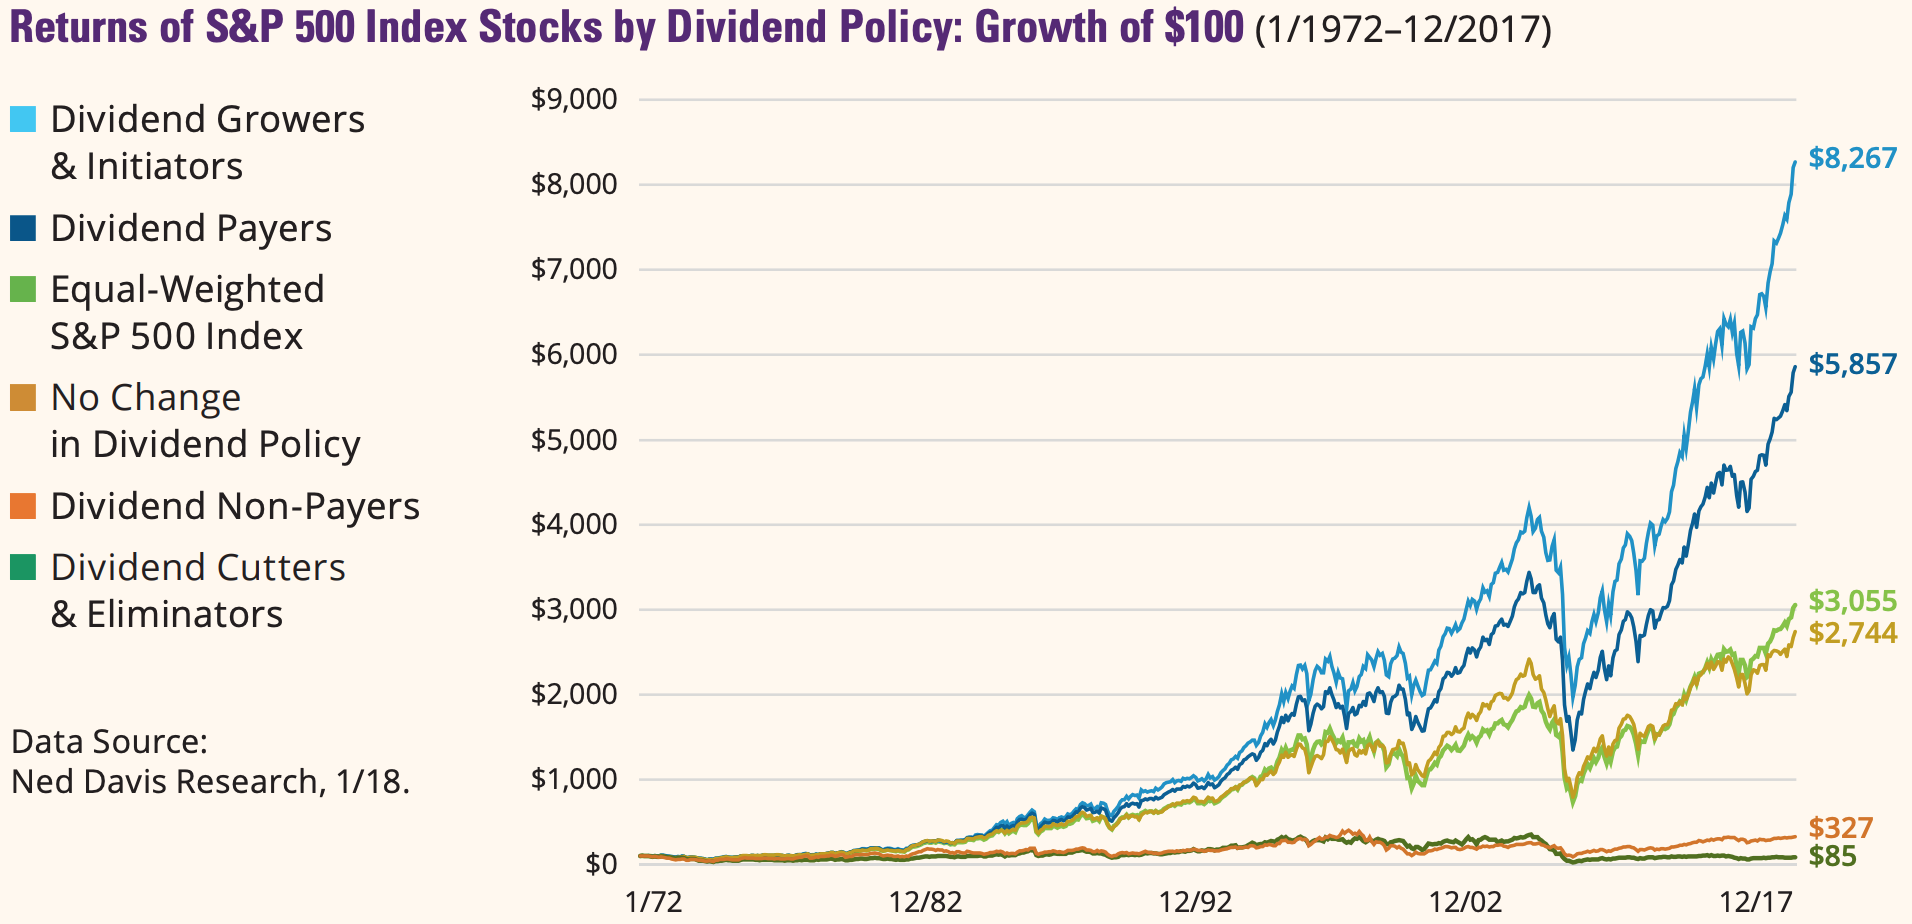 Companies that are growing or initiating their dividends have performed best